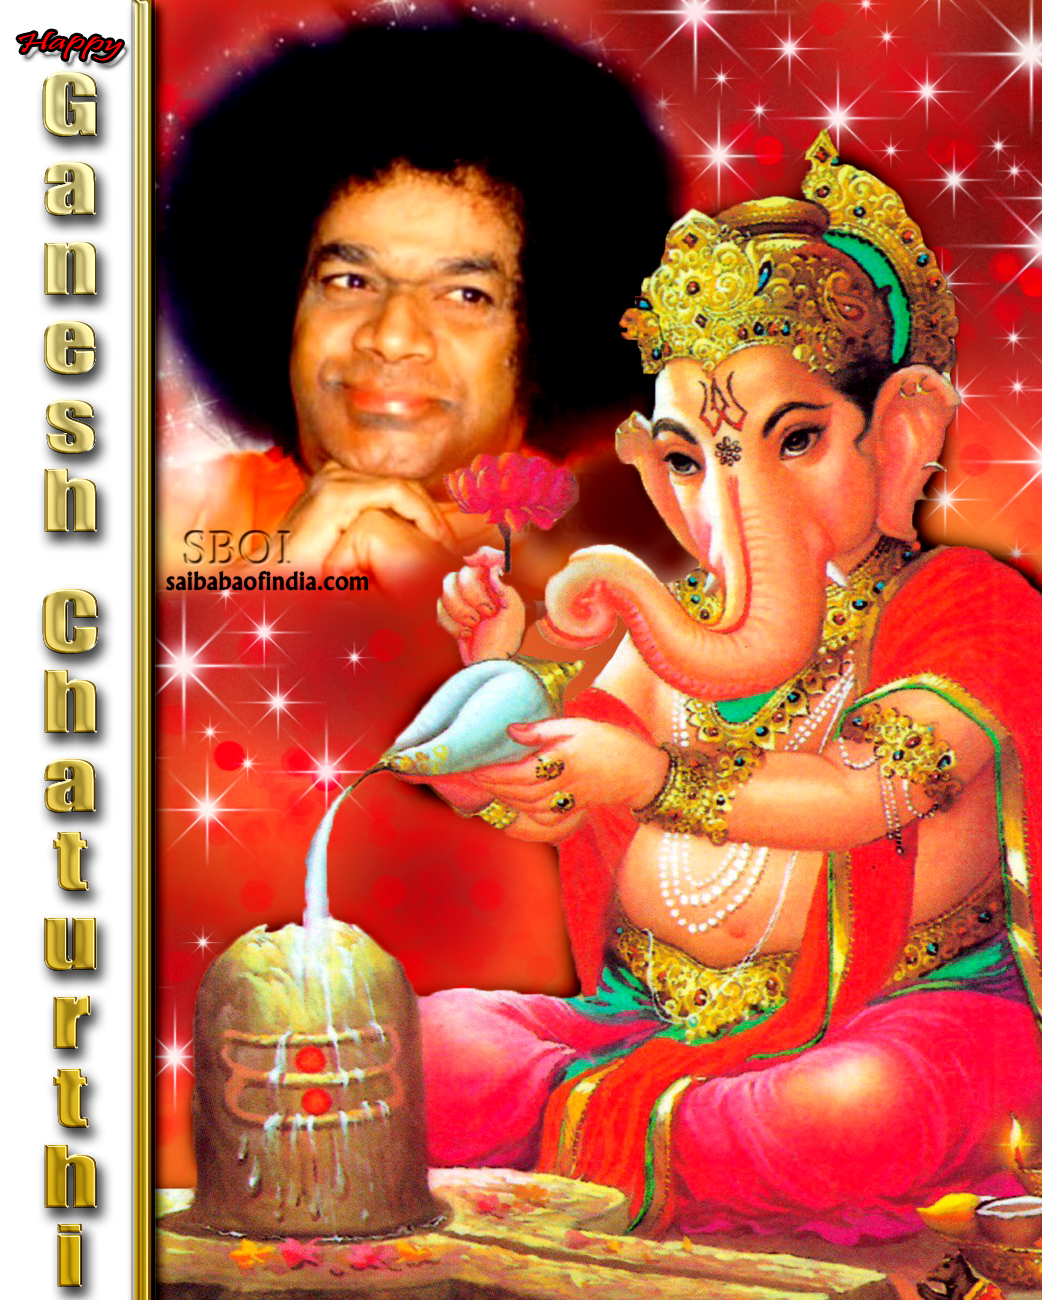 PHOTOS & VIDEO: Sathya Sai Baba- Ganesha Chaturthi